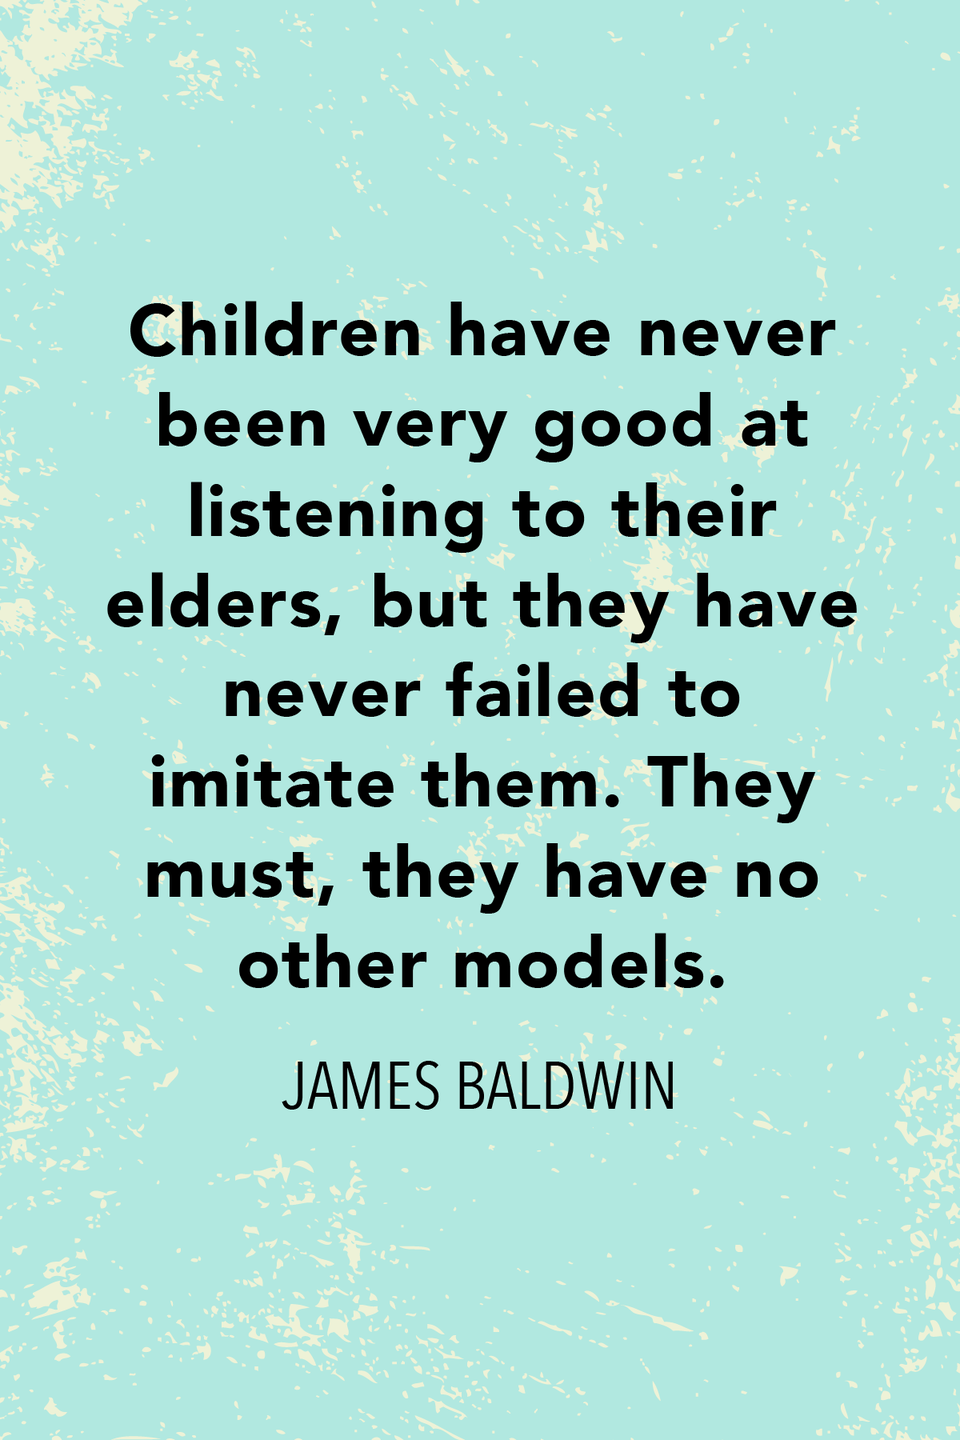 """<p>Baldwin wrote in <em>Nobody Knows My Name</em>: """"Children have never been very good at listening to their elders, but they have never failed to imitate them. They must, they have no other models.""""</p>"""